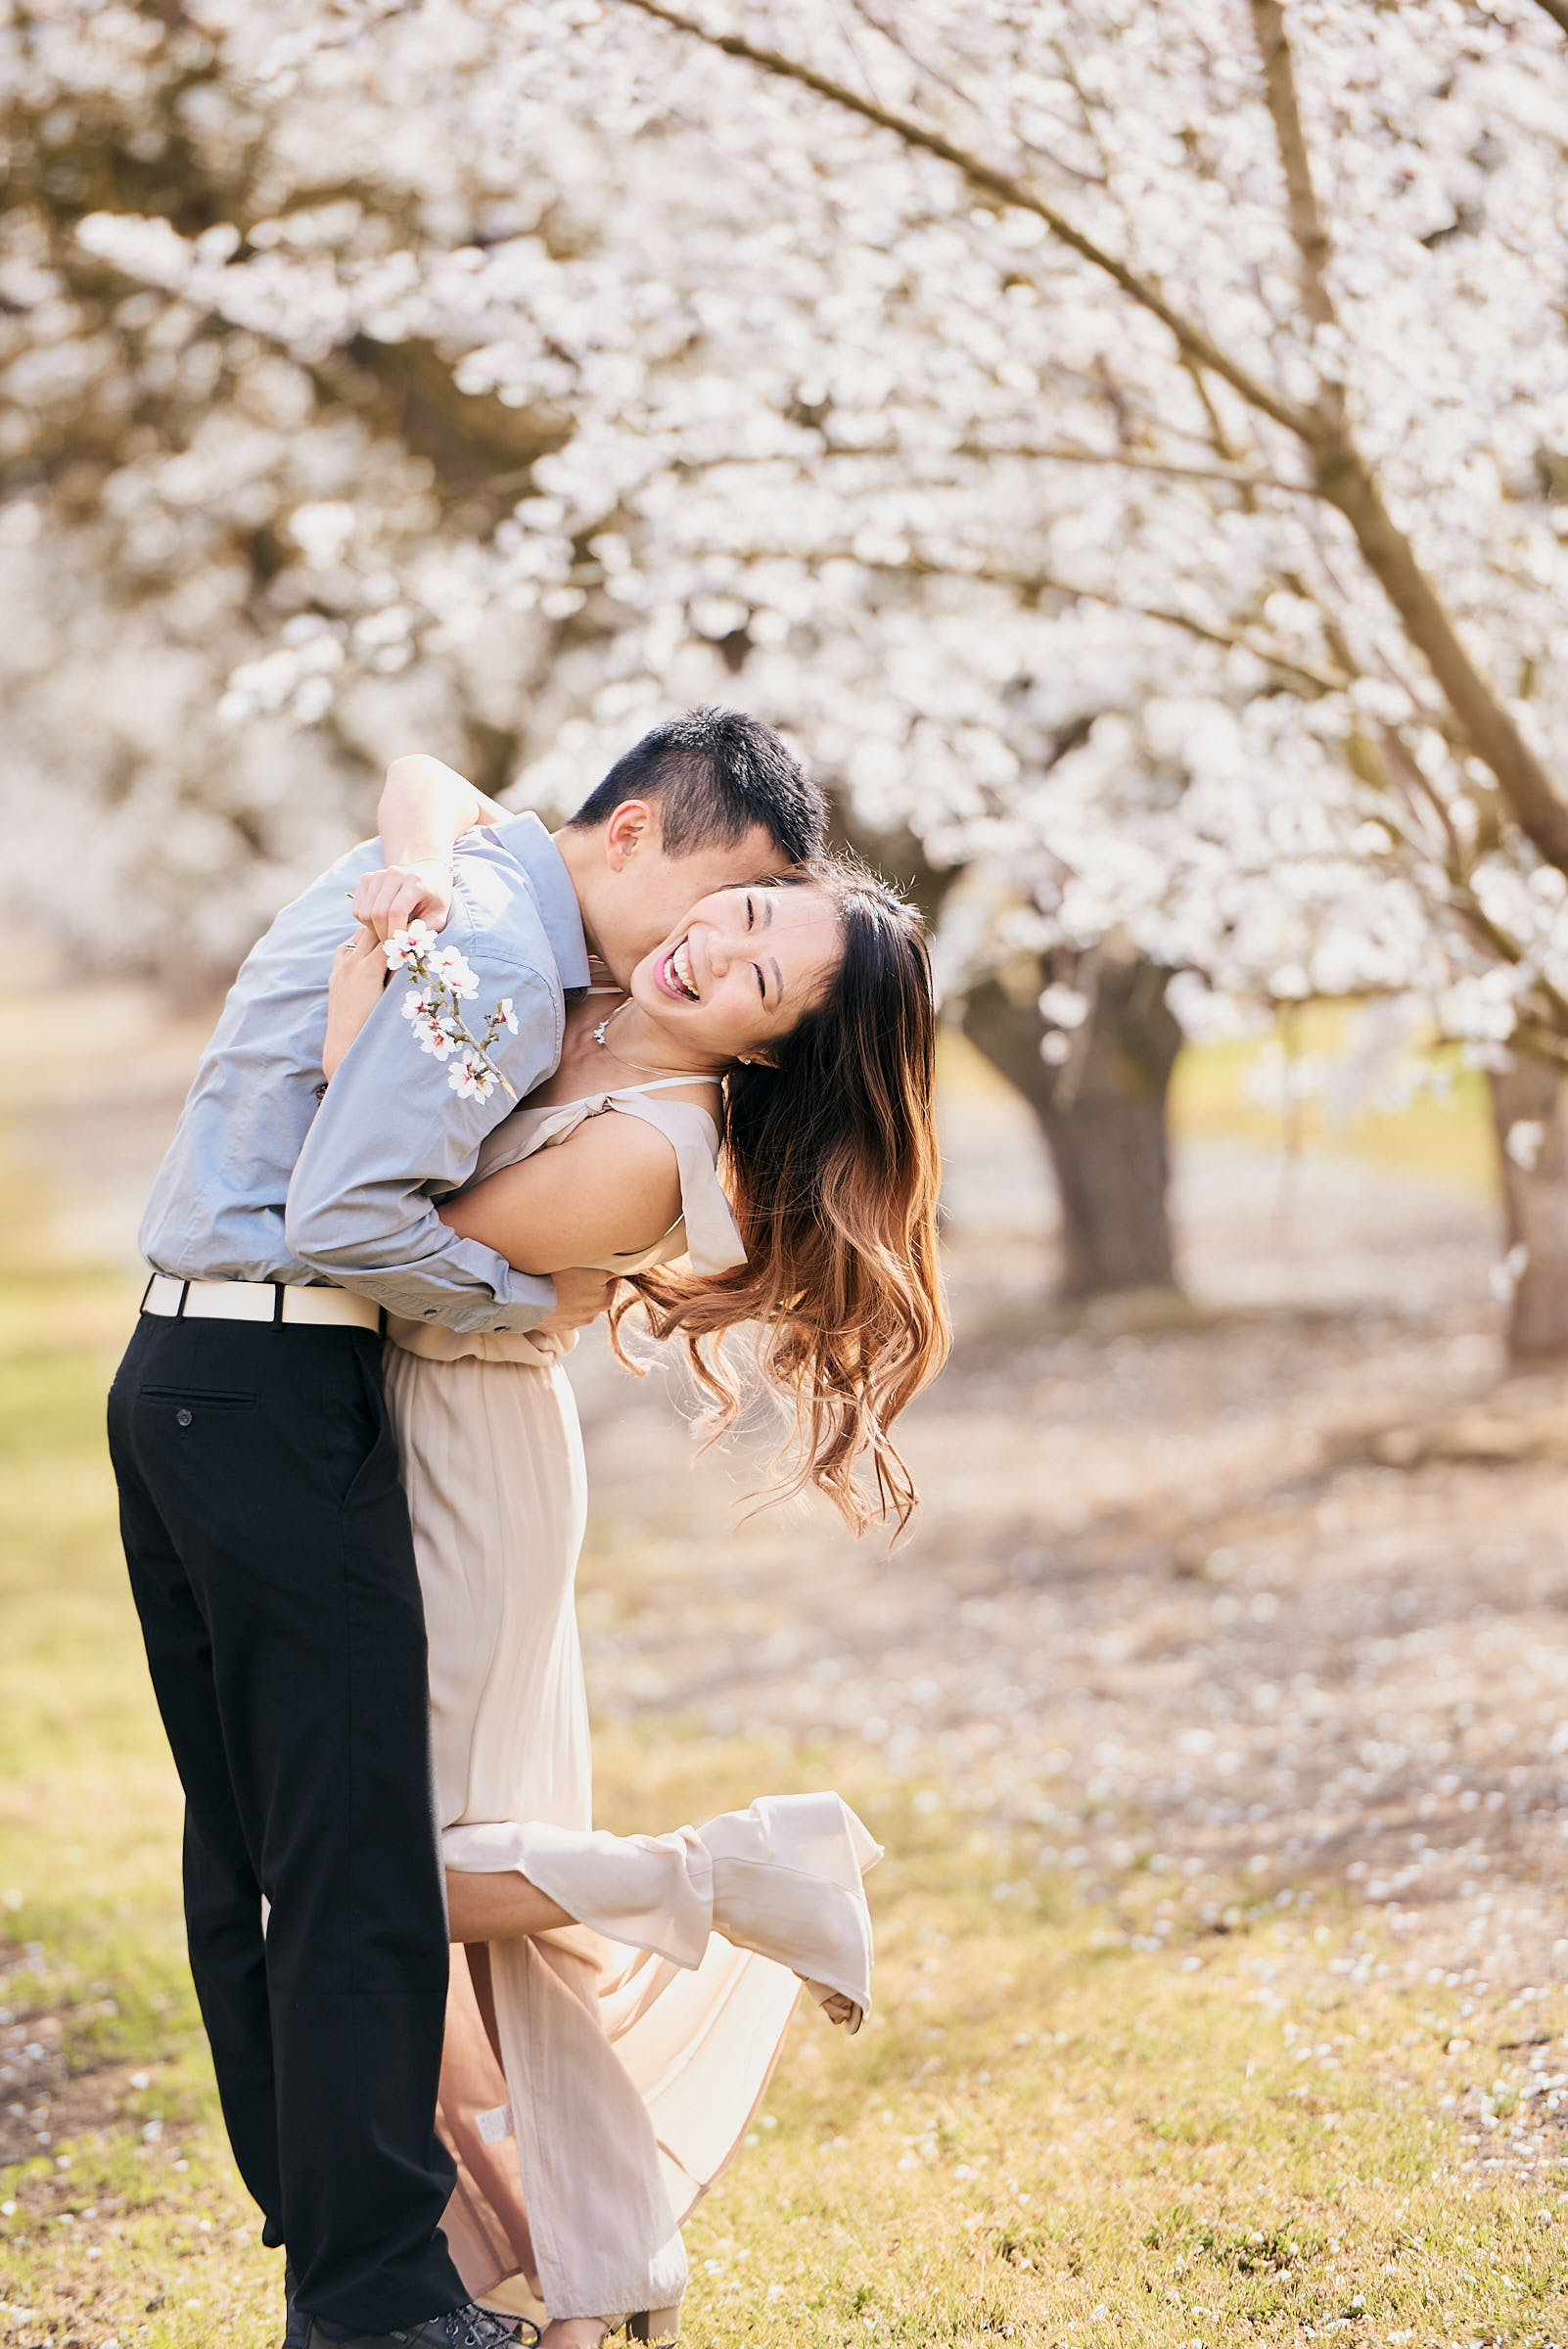 Cute Couple Photos At Almond Blossom Bay Area Location